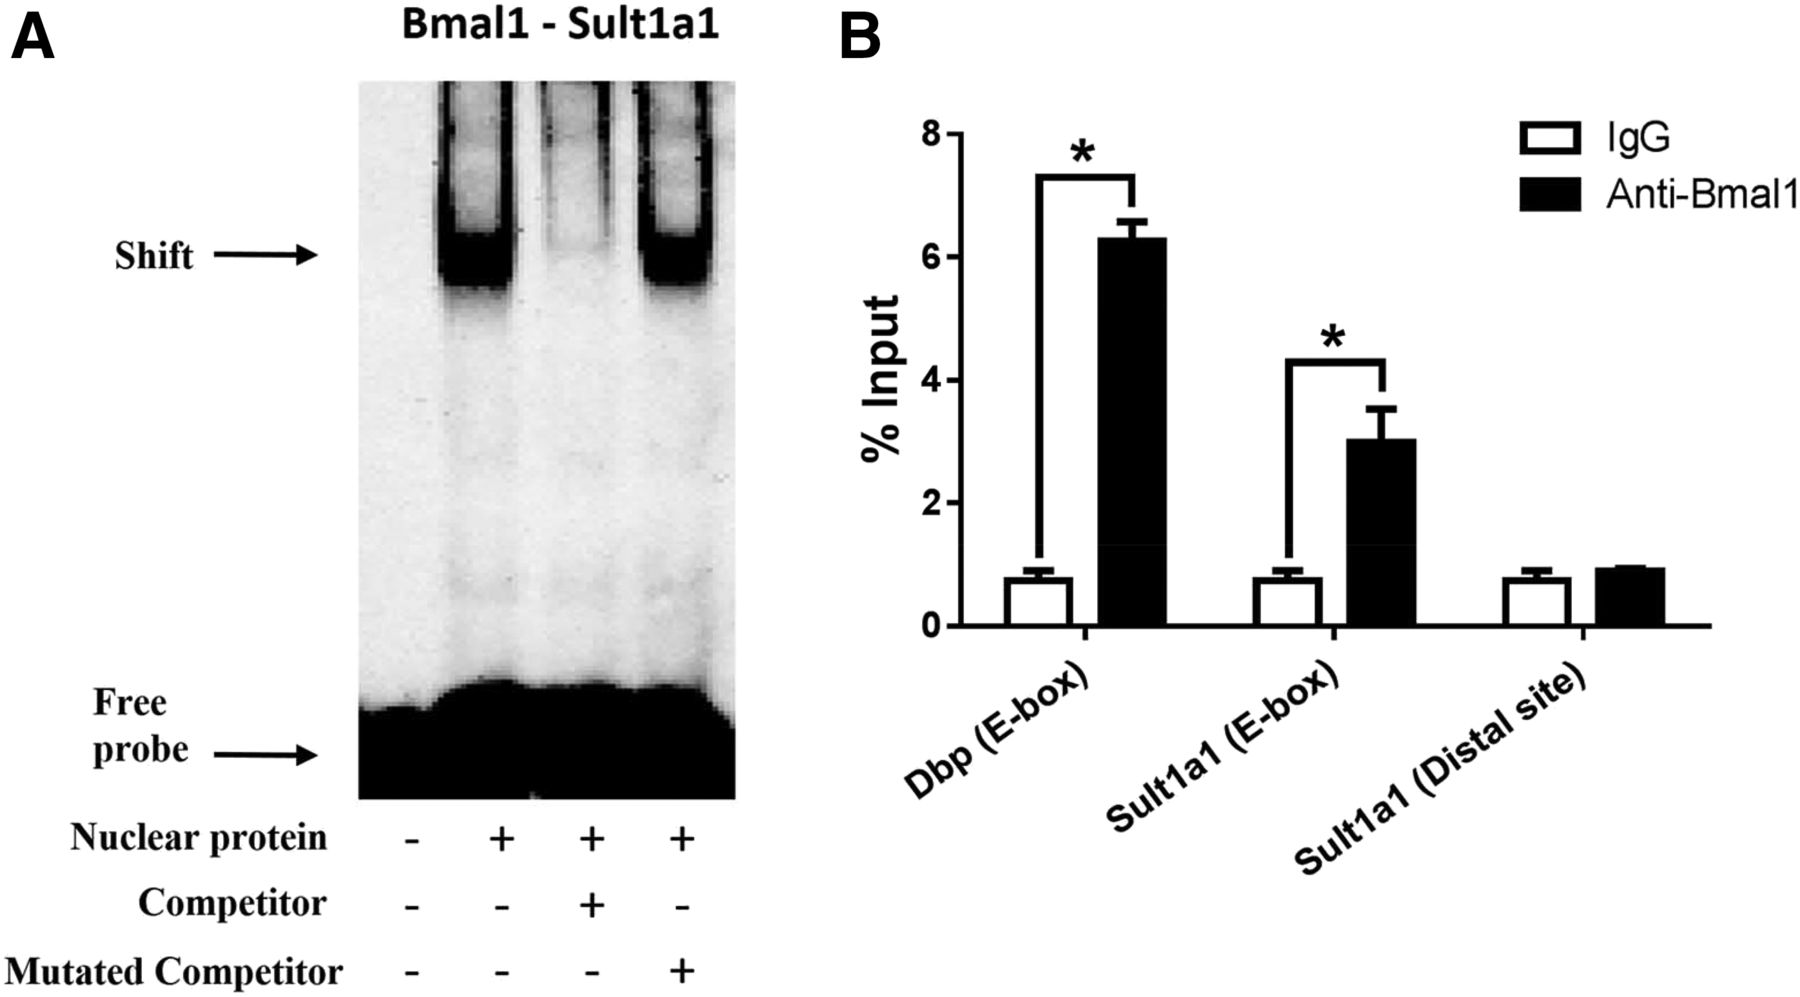 The Clock Protein Bmal1 Regulates Circadian Expression and